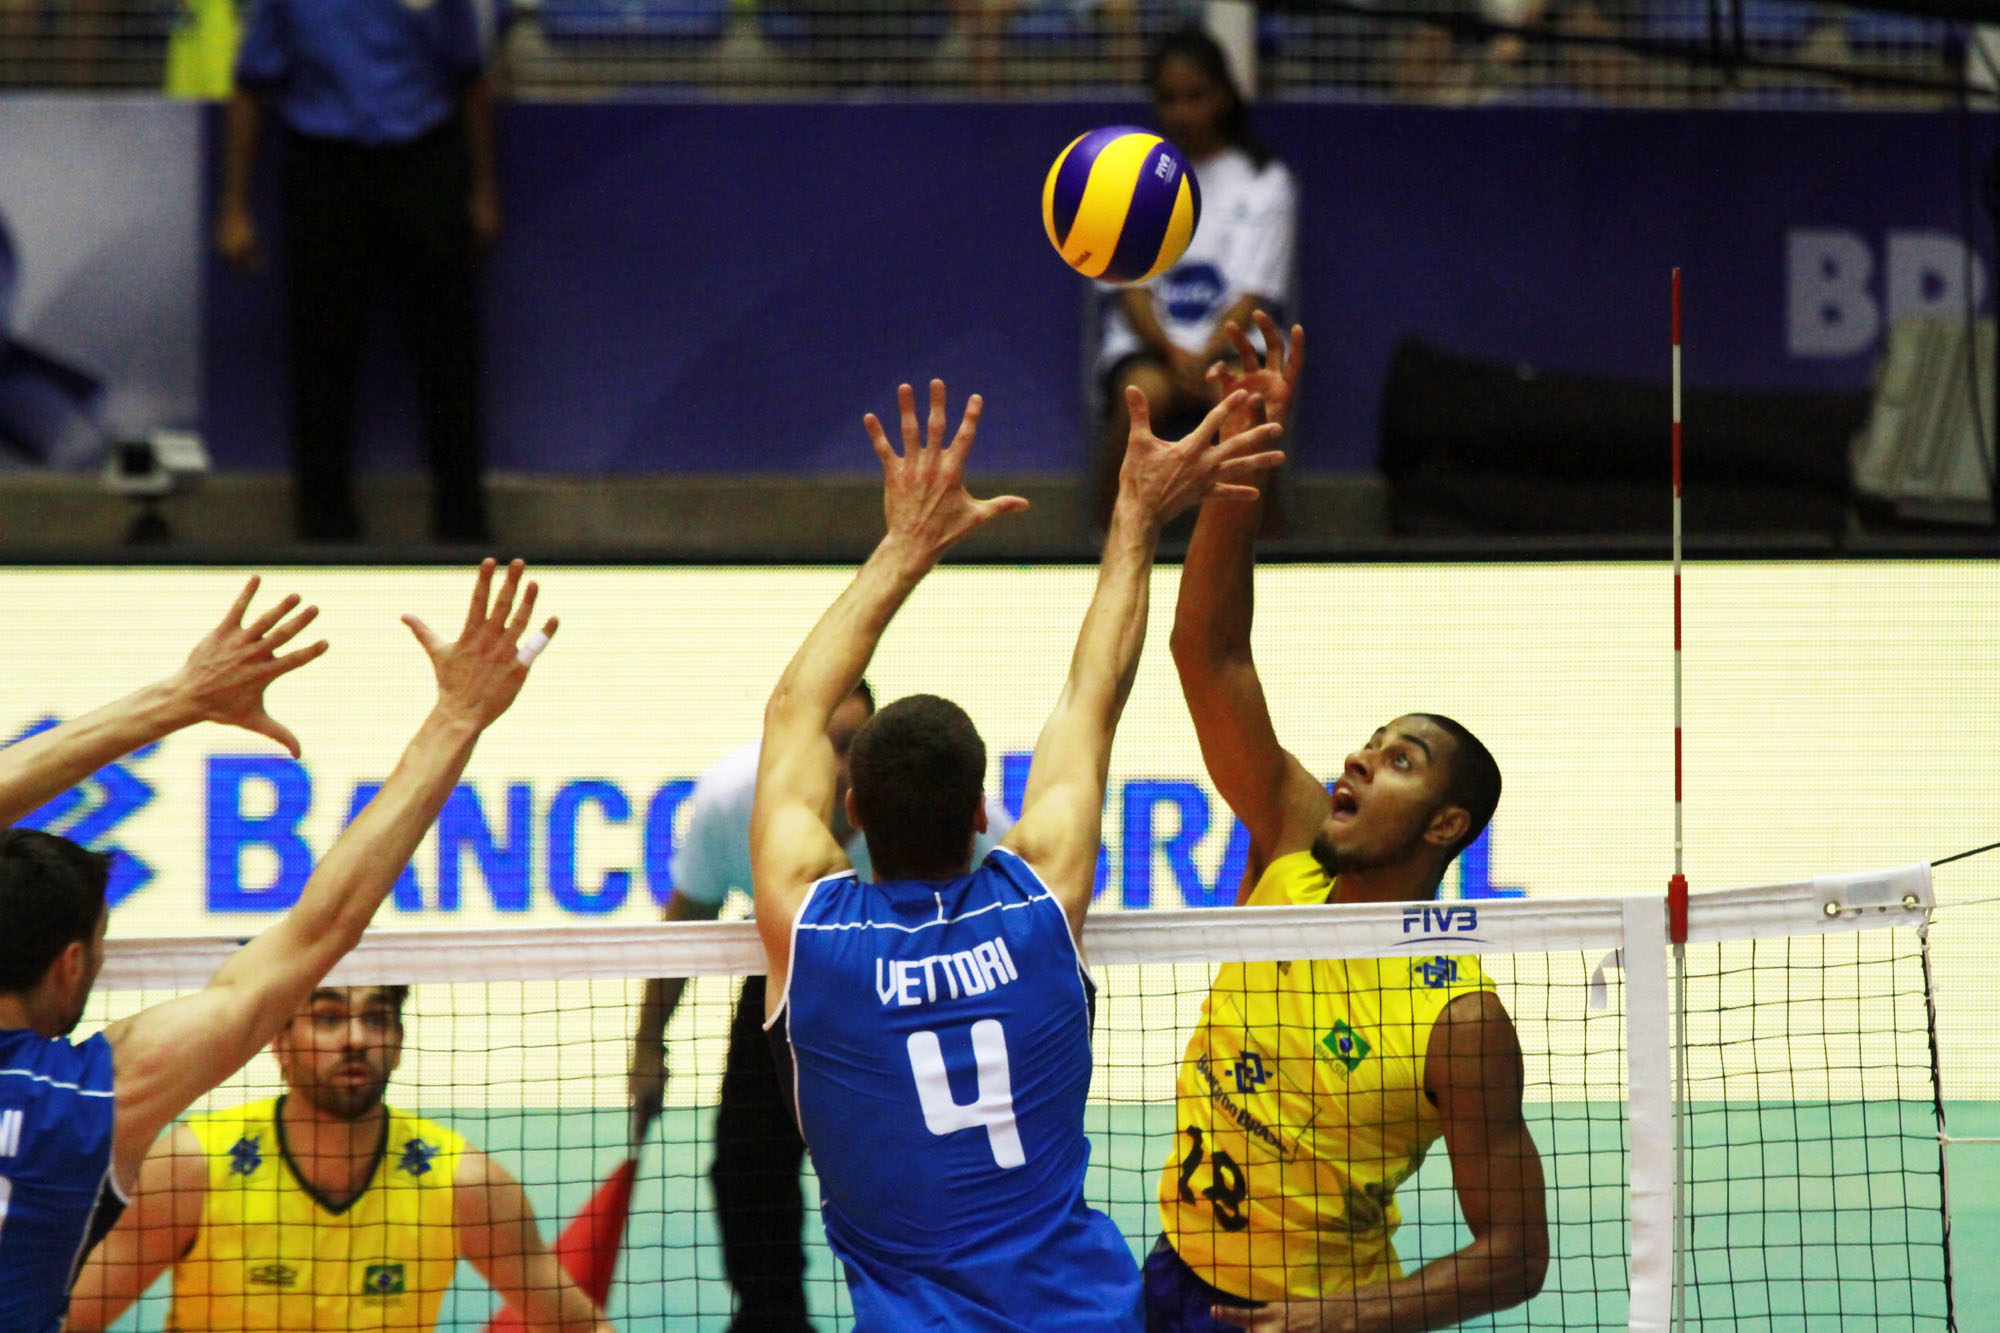 http://www.fivb.org/Vis2009/Images/GetImage.asmx?No=201489981&maxSize=960